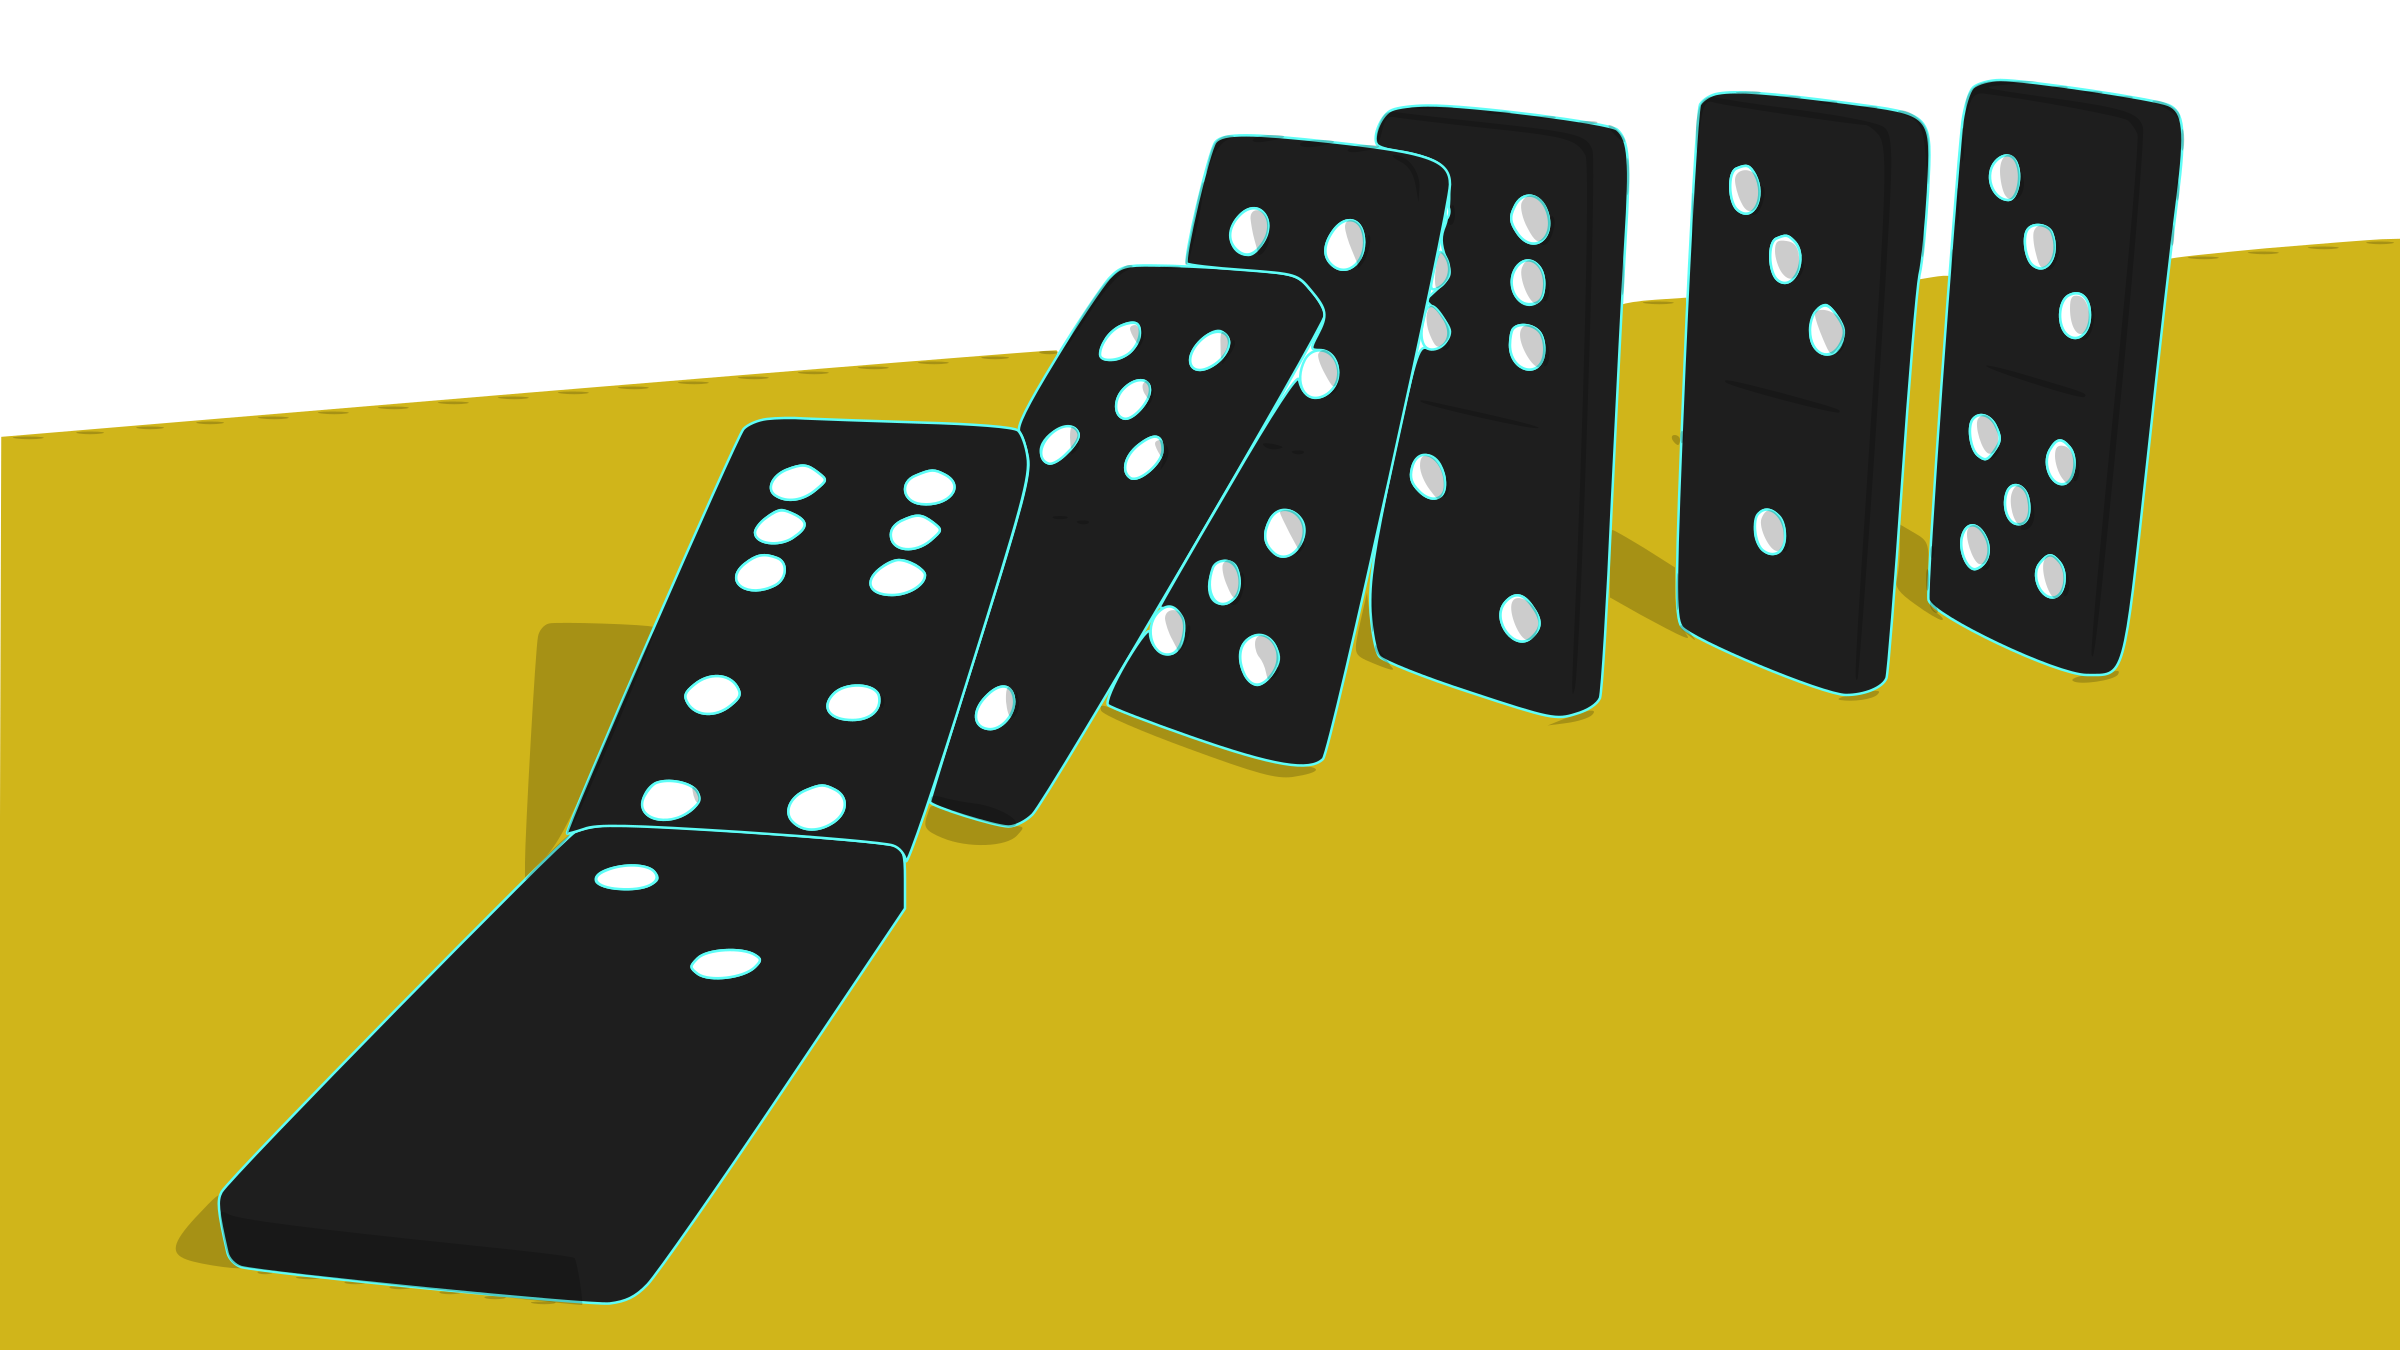 Falling Dominoes by mazeo